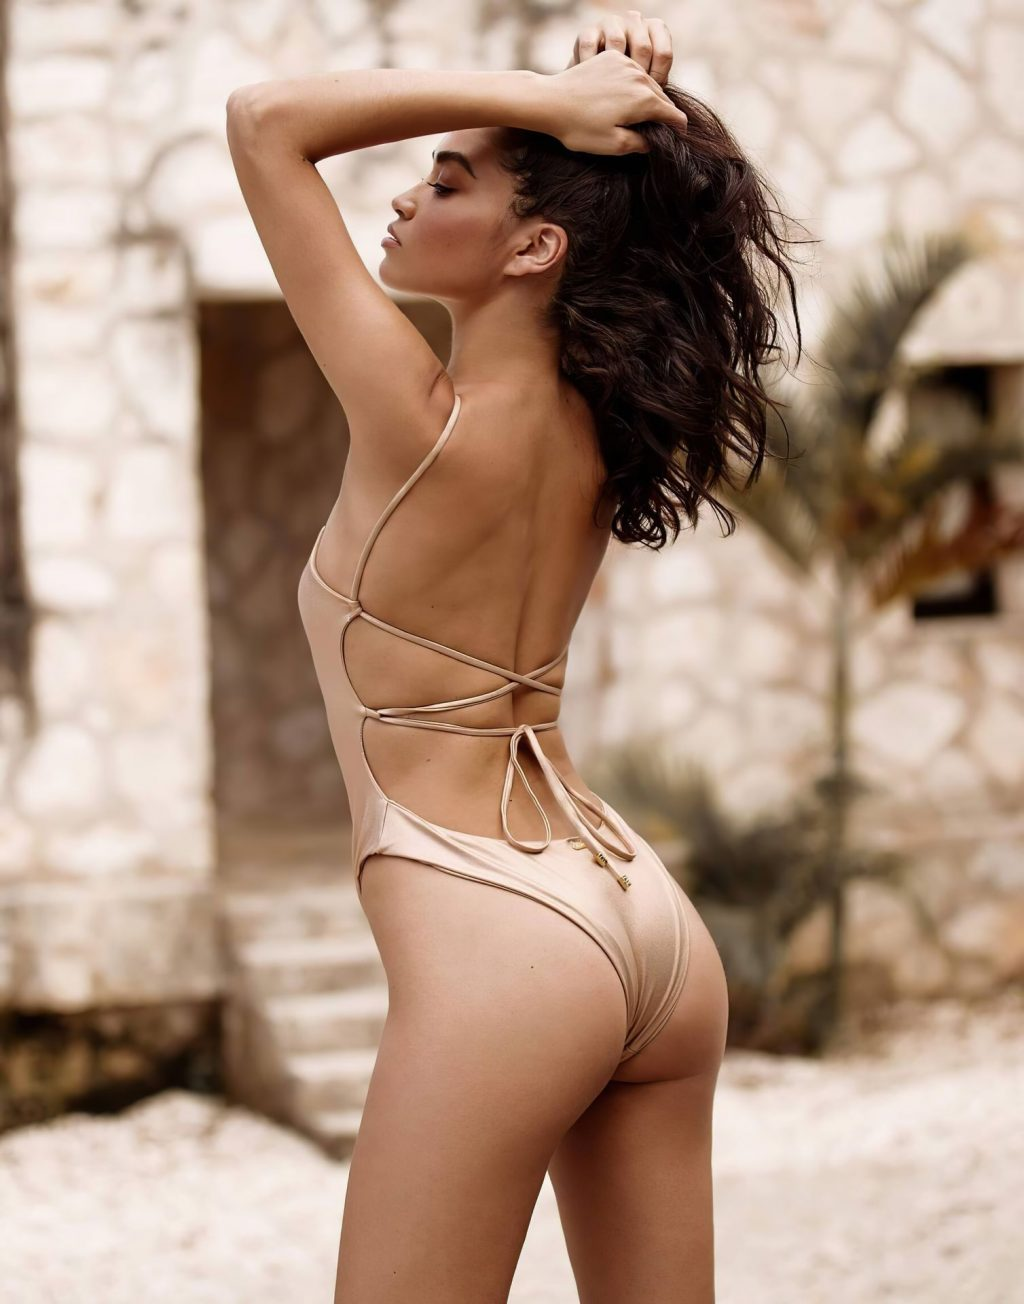 Shanina Shaik Shows Her Butt for Beach Bunny Swimwear Collection (8 Photos)